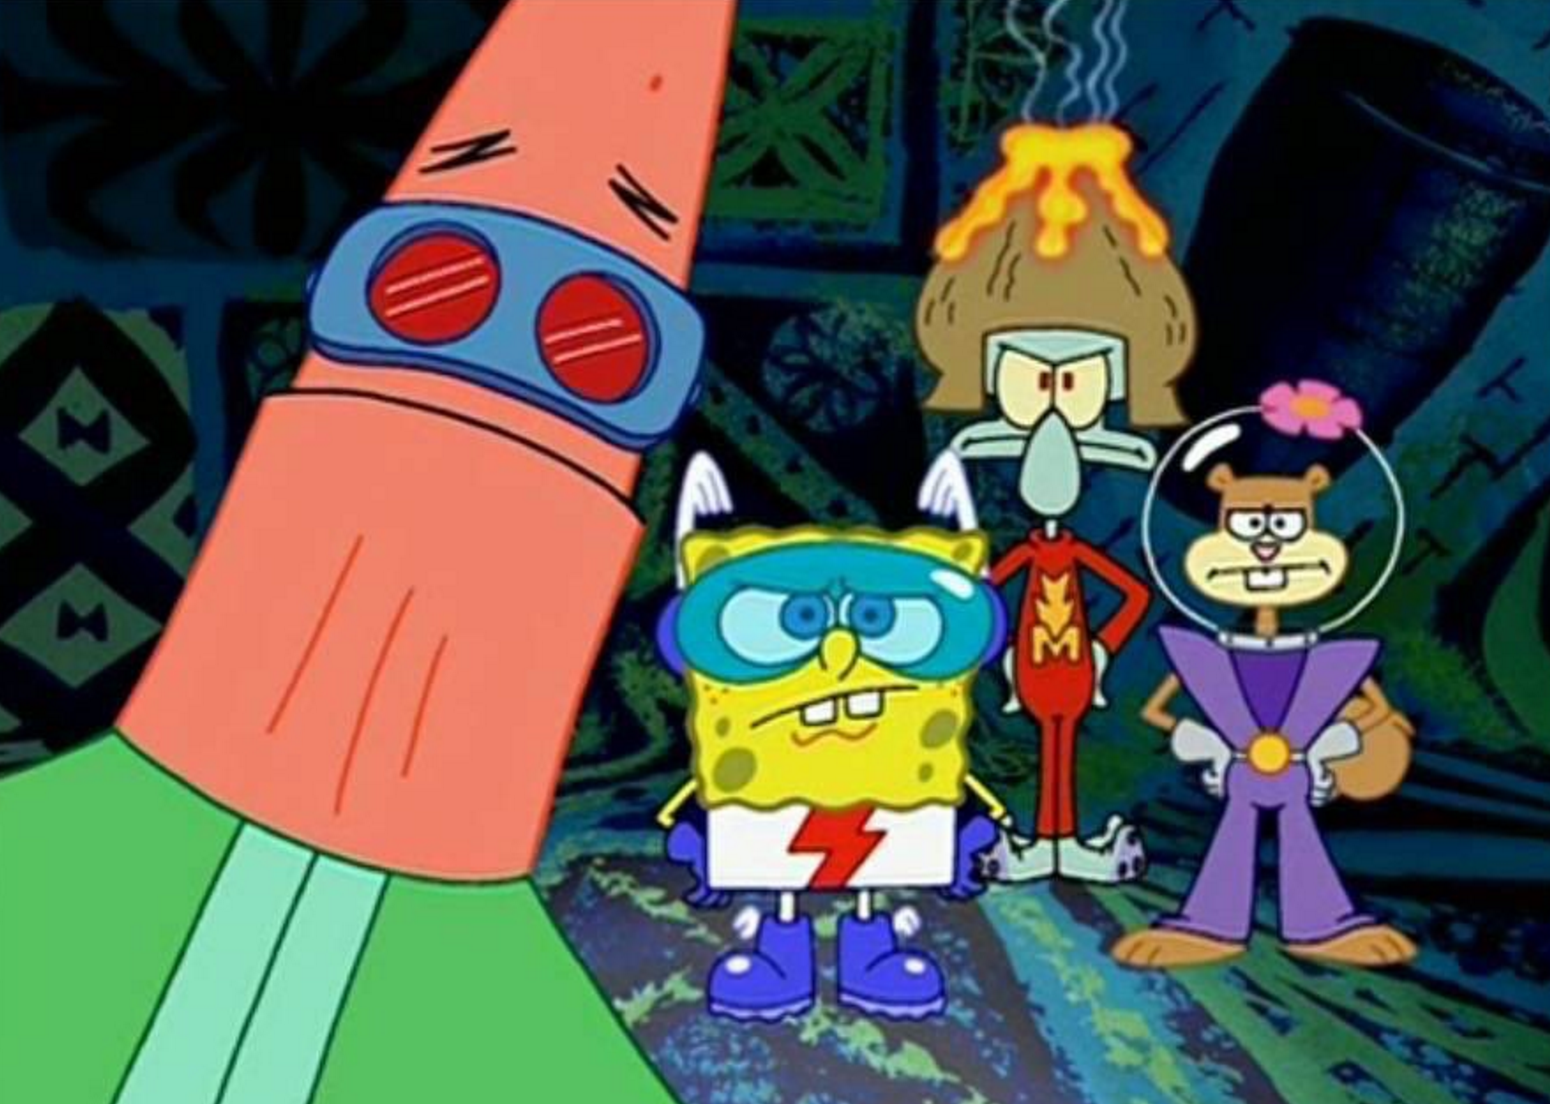 Can you match the movie to the spongebob squarepants meme playbuzz